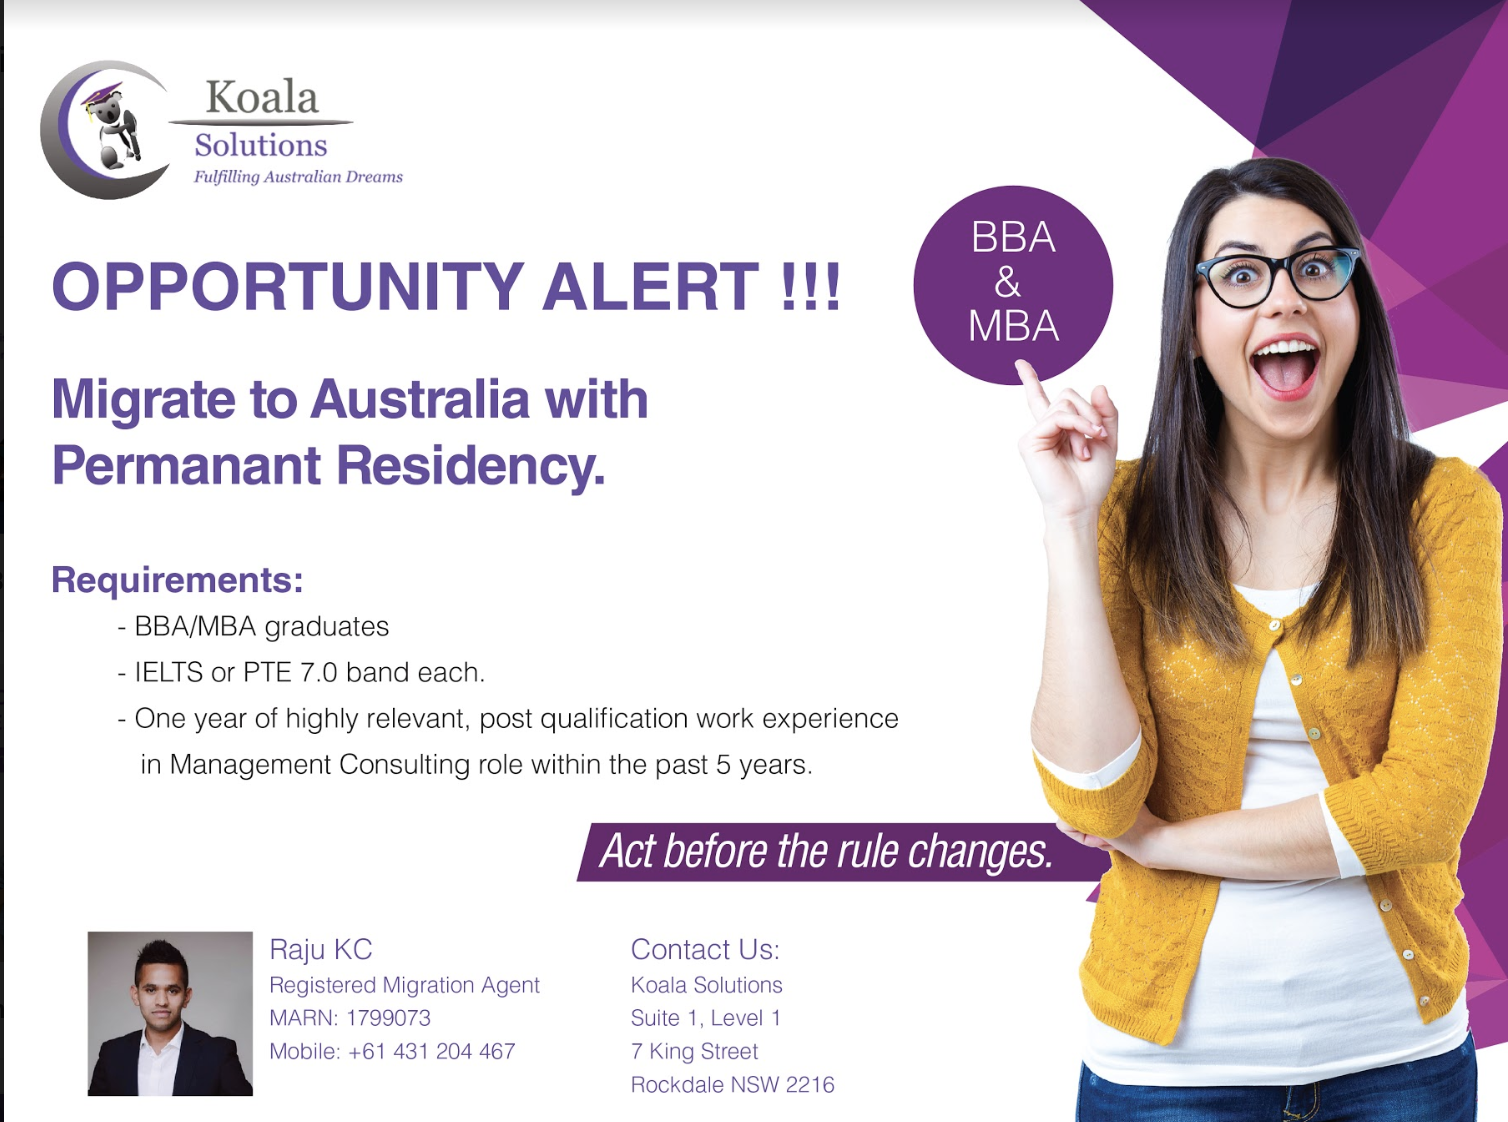 Opportunity for MBA/BBA